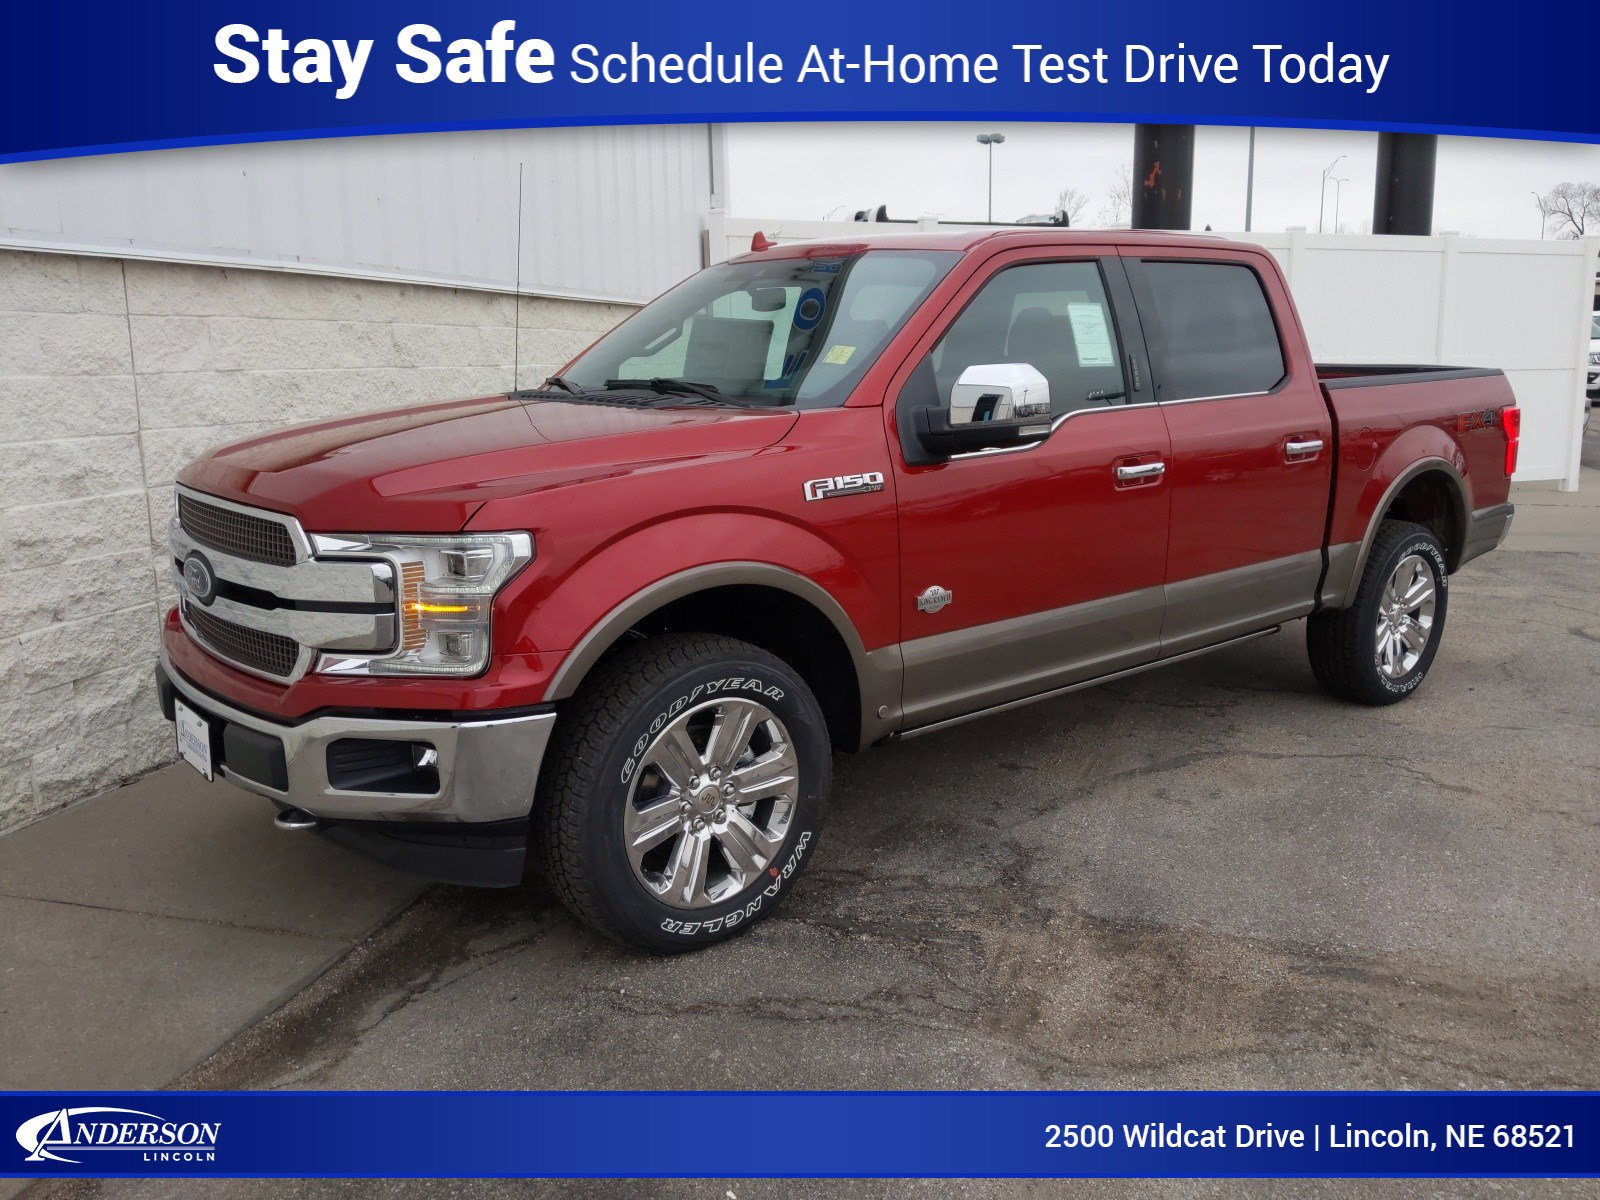 New 2020 Ford F-150 King Ranch Crew Cab Pickup for sale in Lincoln NE